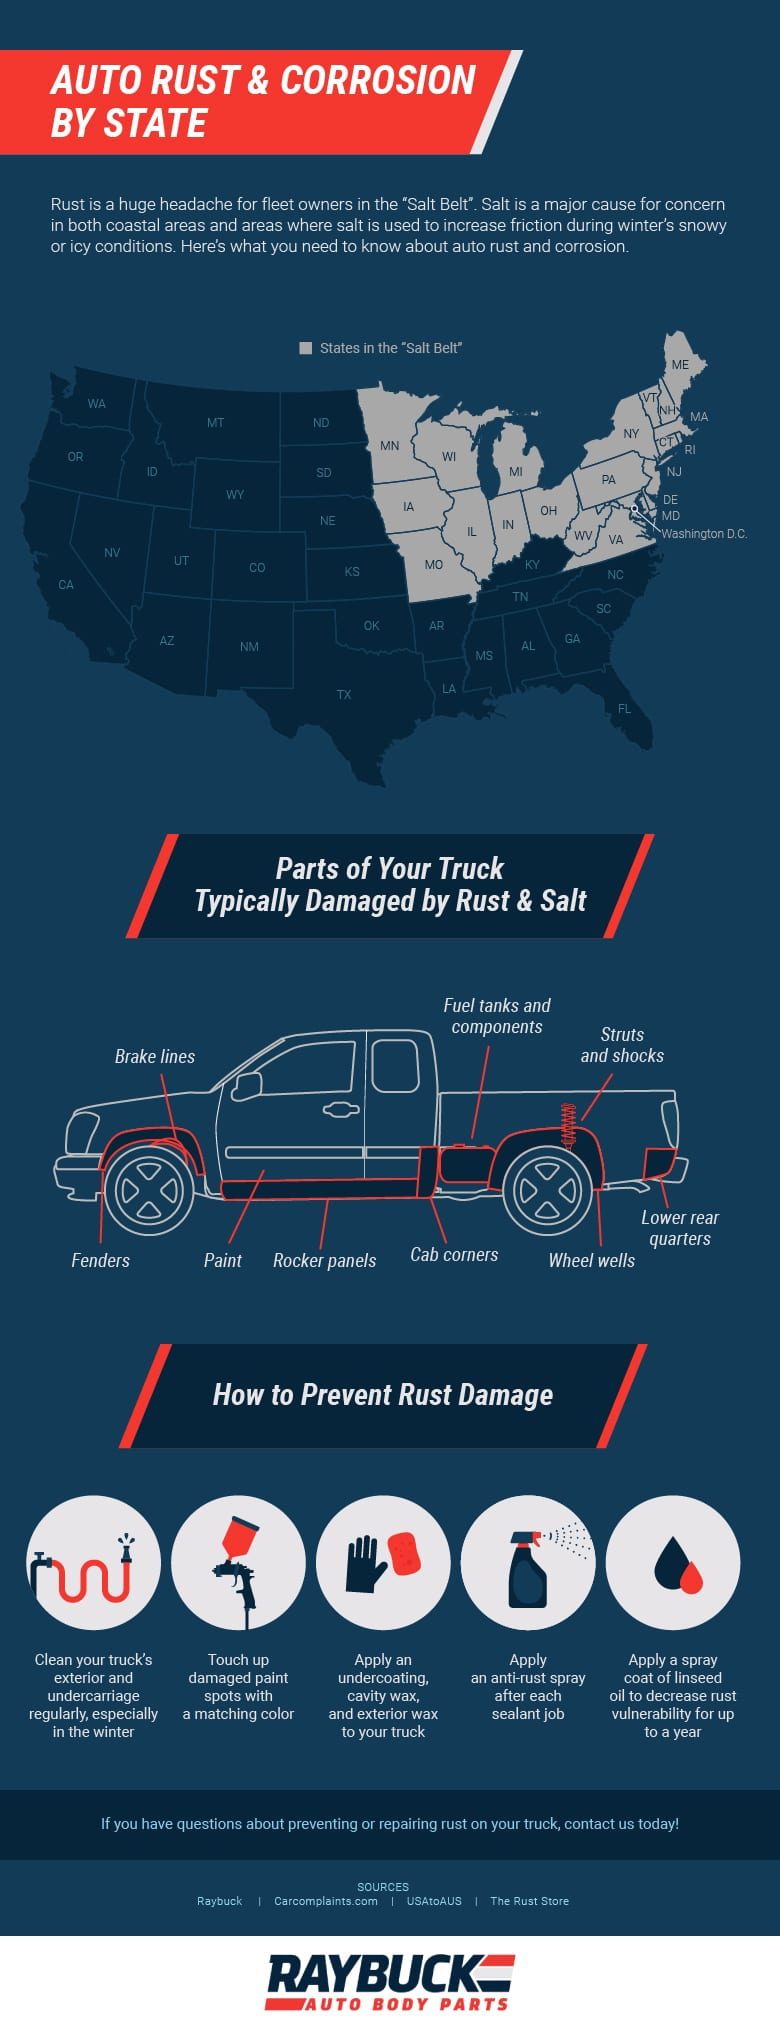 Worst States for Salt & Rust On Vehicles - Micrographic